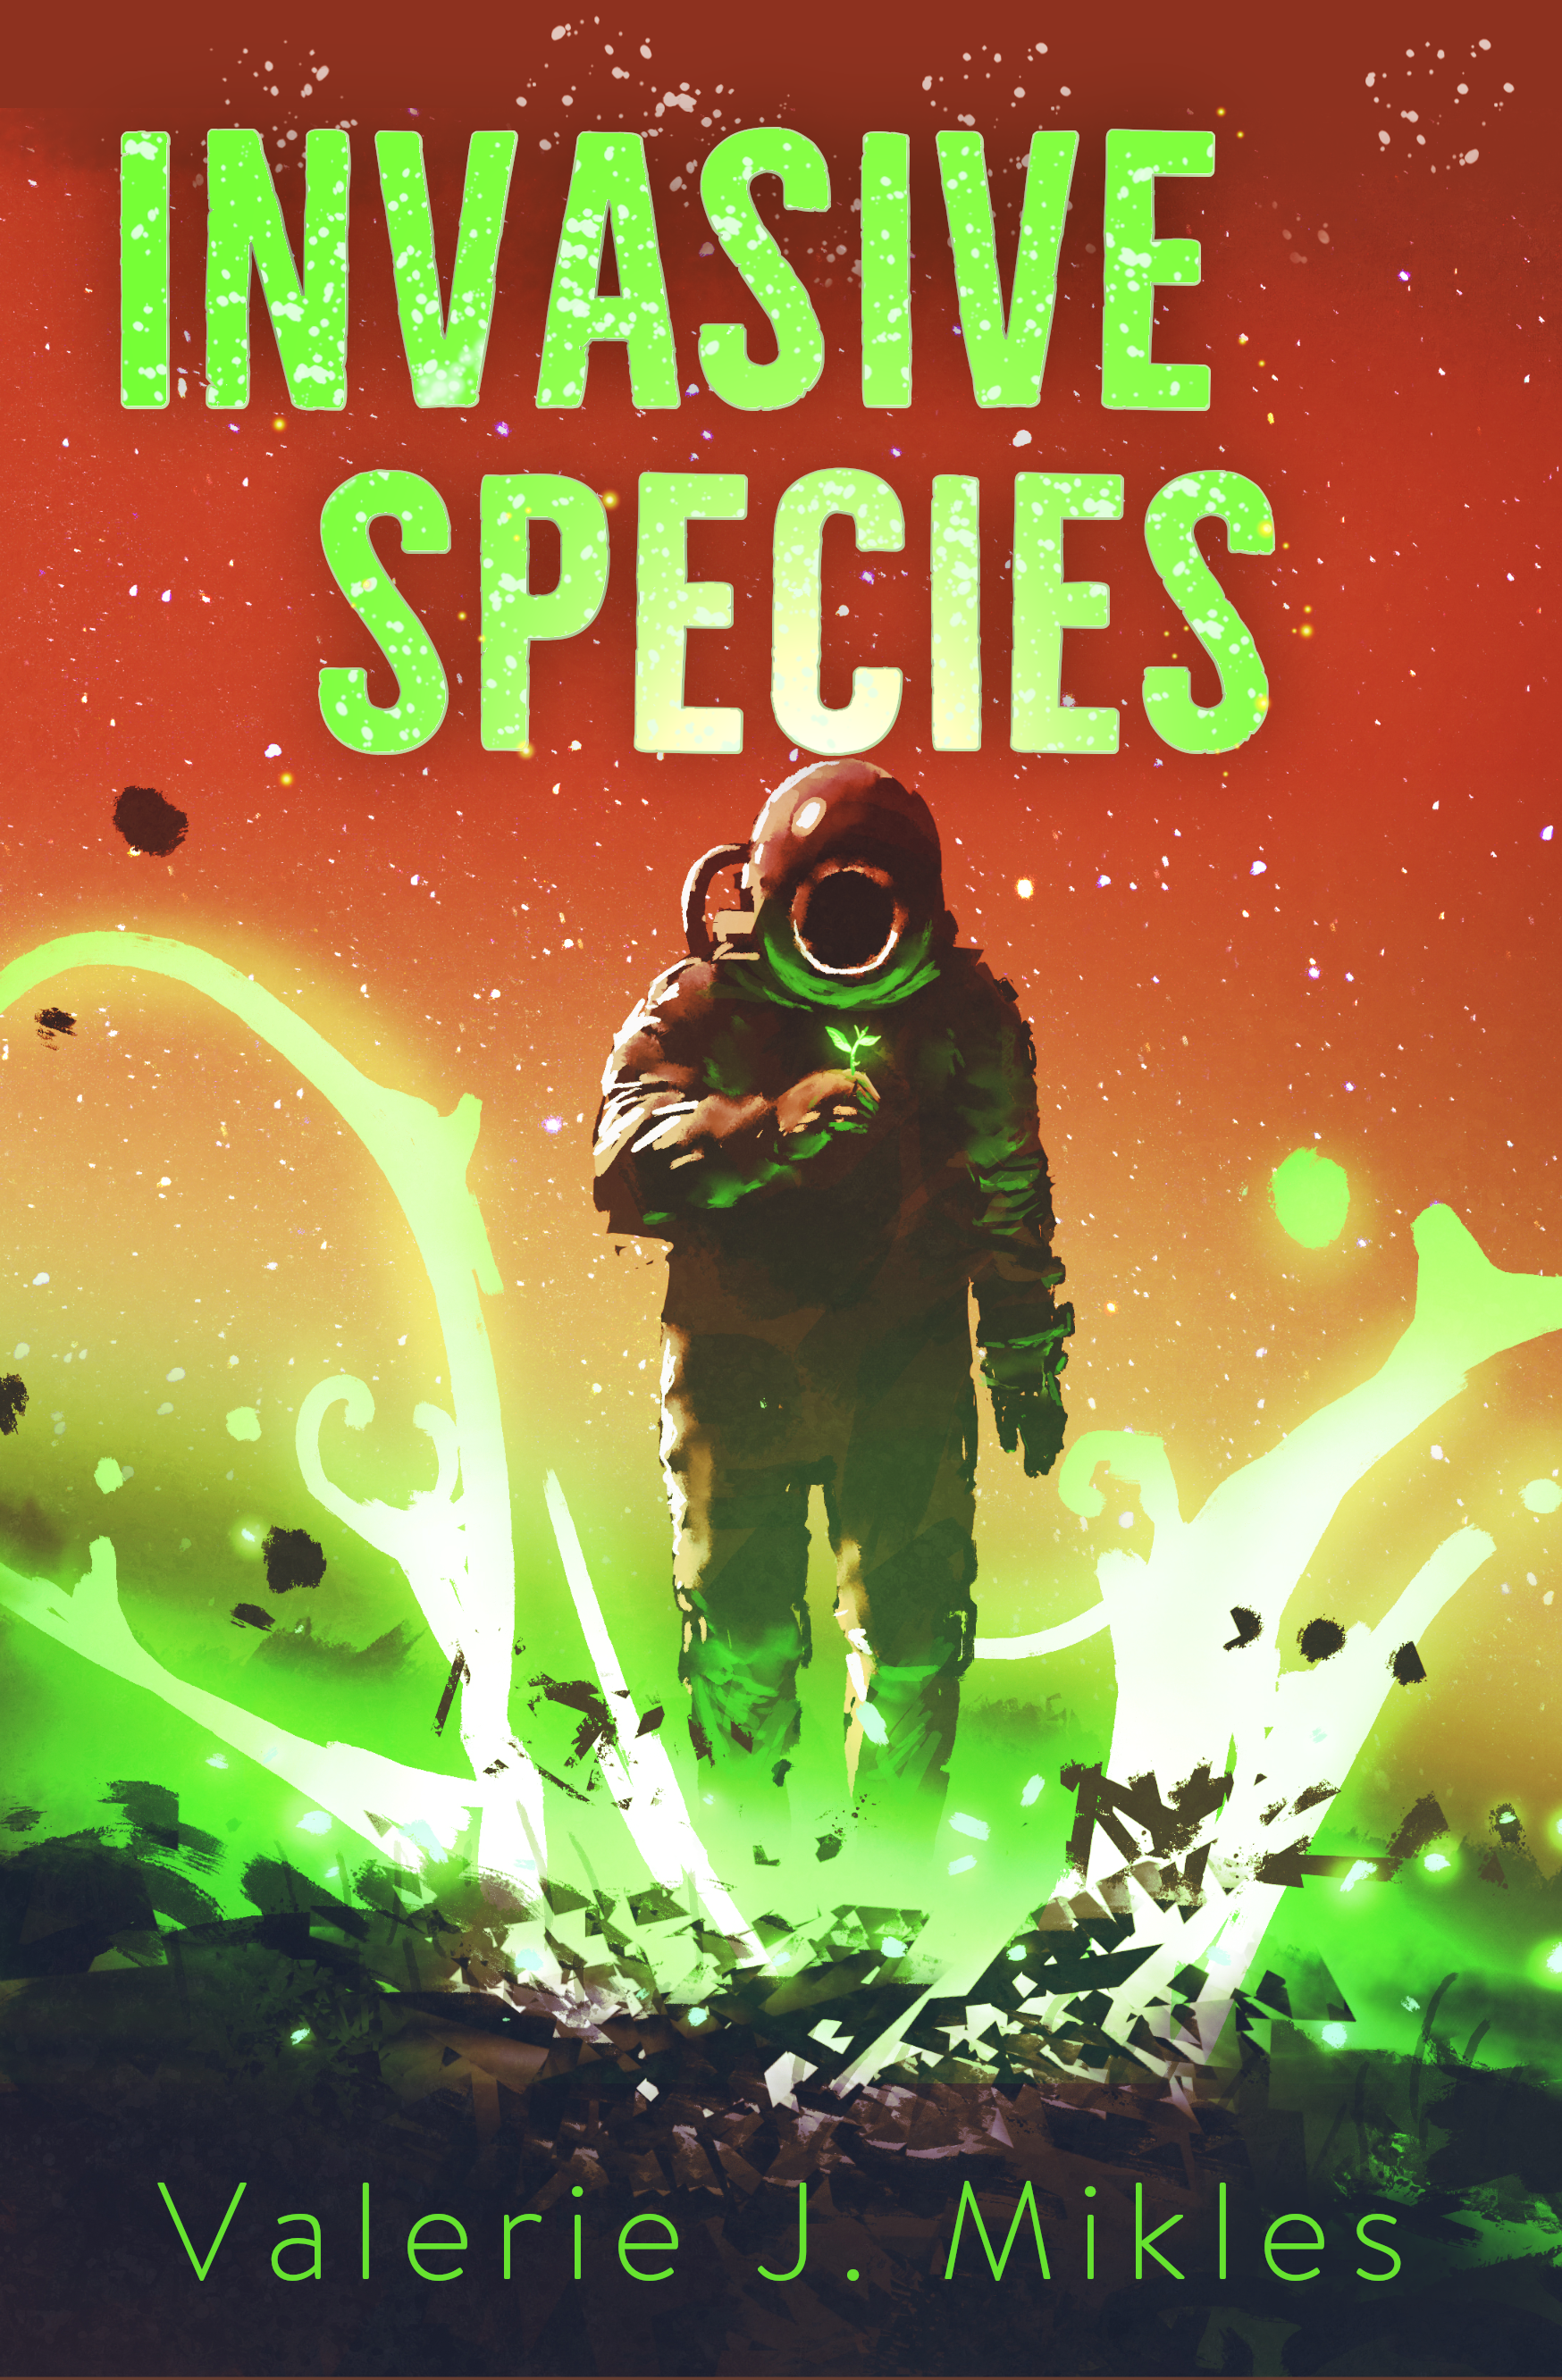 Cover of Invasive Species, showing something strange growing in a petri dish.